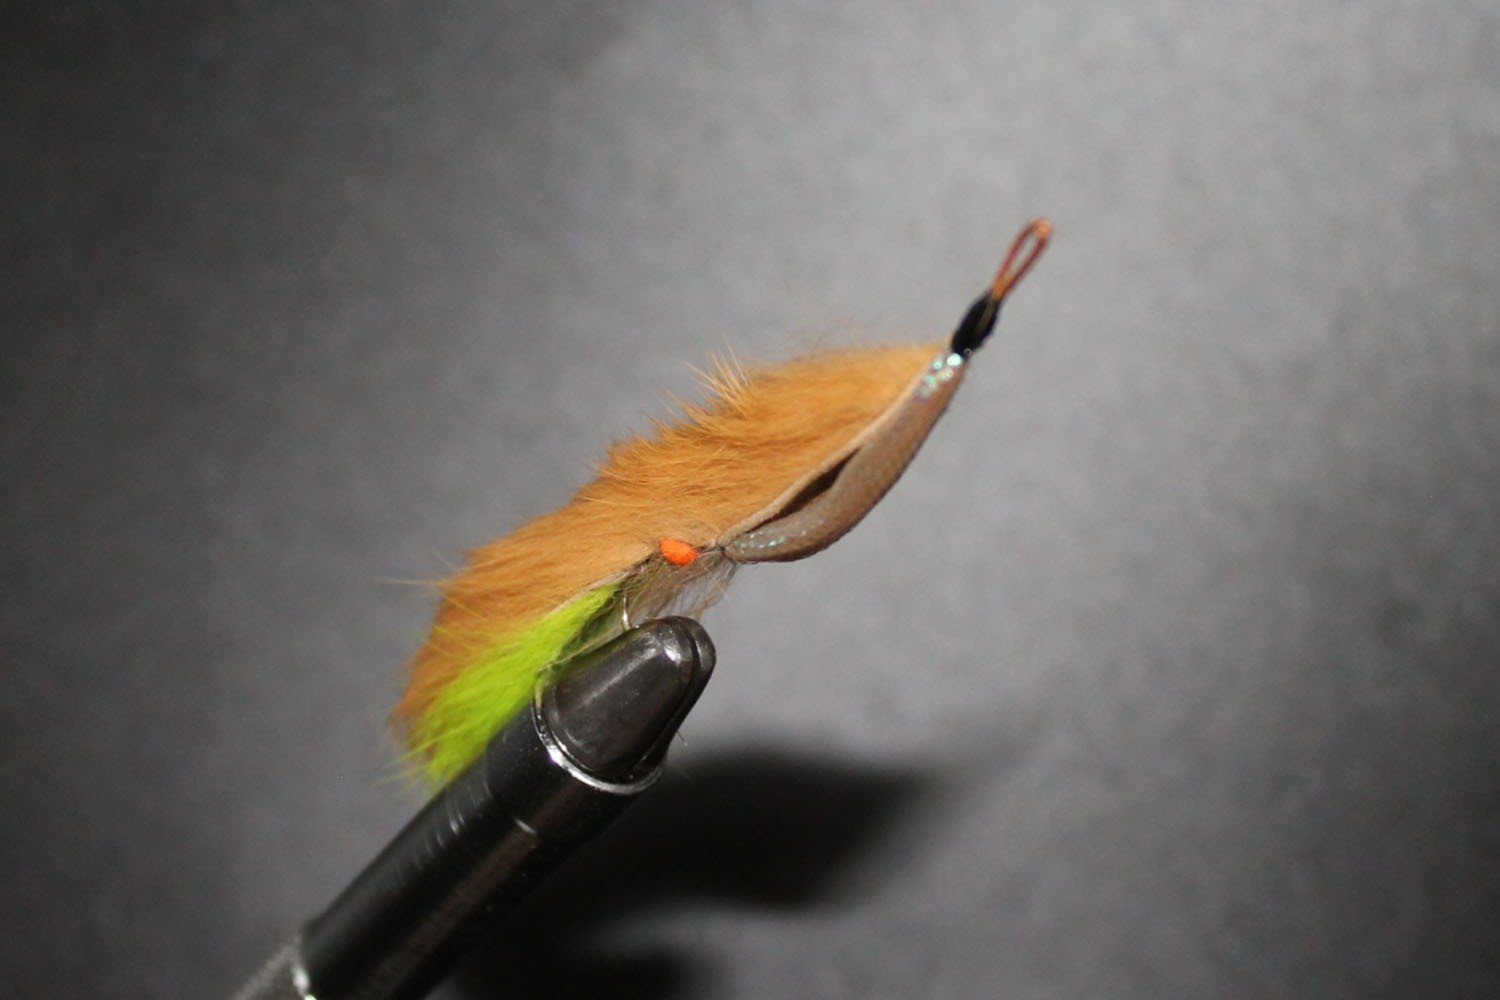 Tan and Lime Weed Fly (Snake)